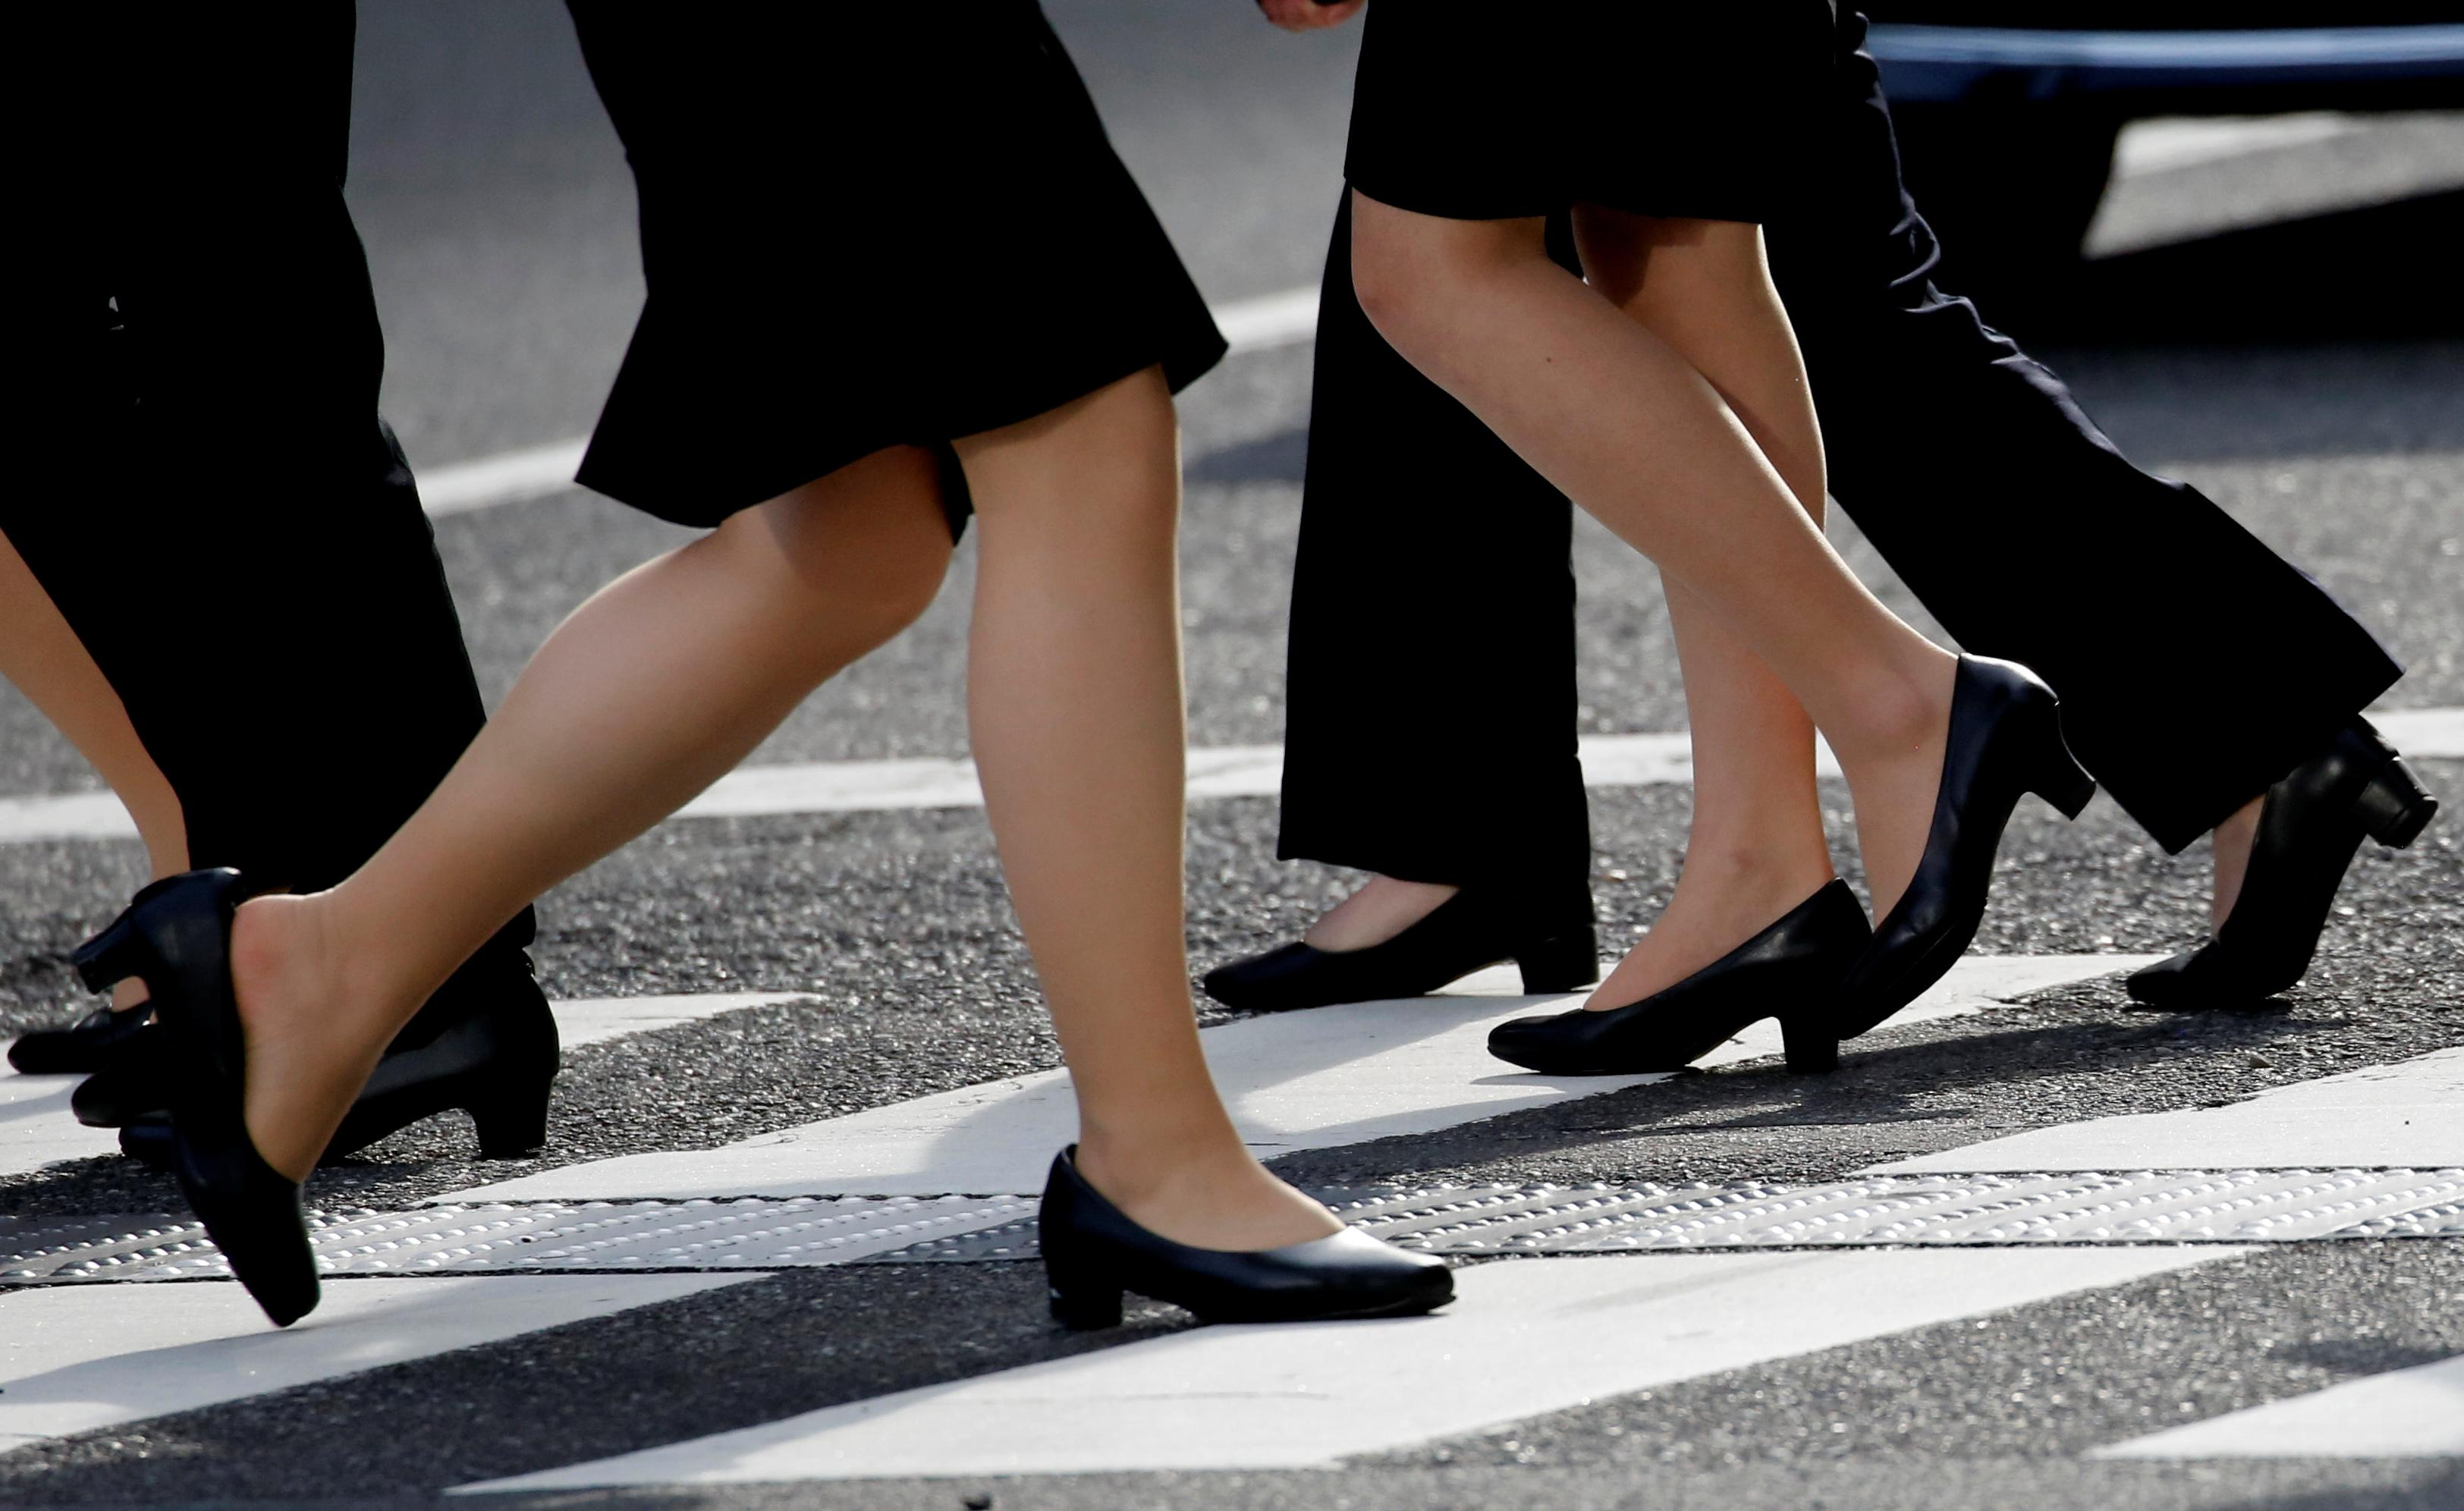 ce20103cd70 Japanese minister responds to #KuToo campaign by saying high heels ...